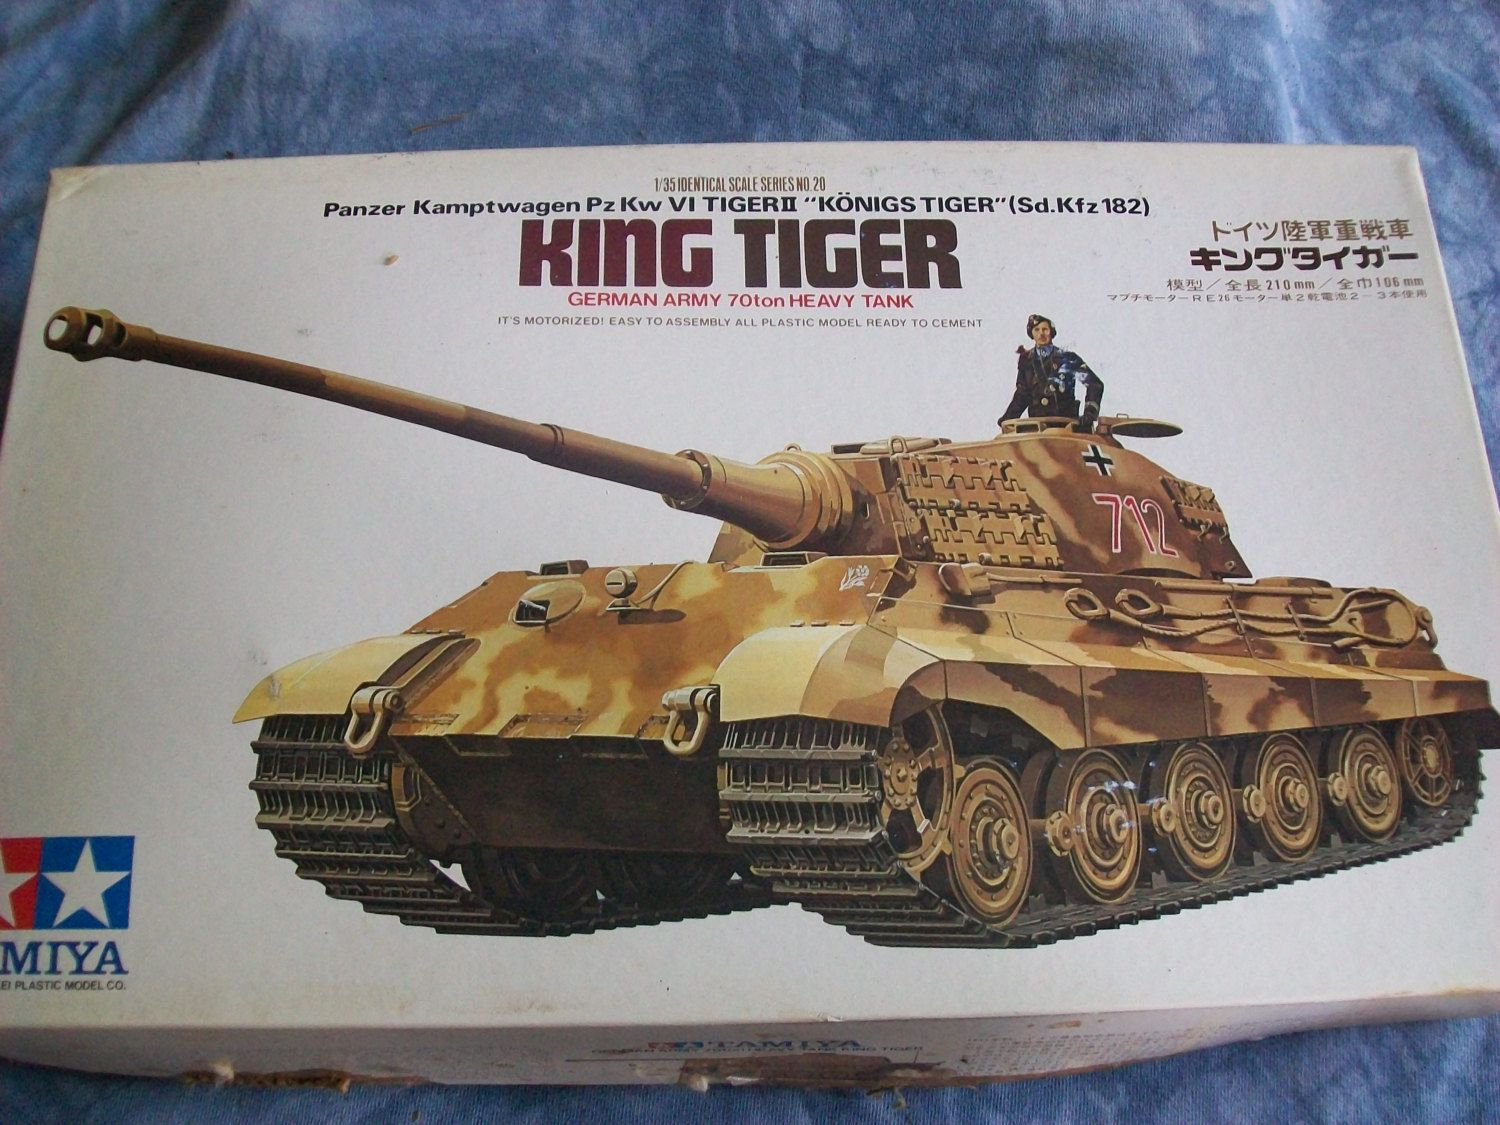 1970's Tamiya 1/35 Scale Military Panzer Kampfwagen Pz Kw VI Tiger II Kinigs Tiger Sd. Kfz 182 King Tiger Model (MOTORIZED) by MyHillbillyWays on Etsy